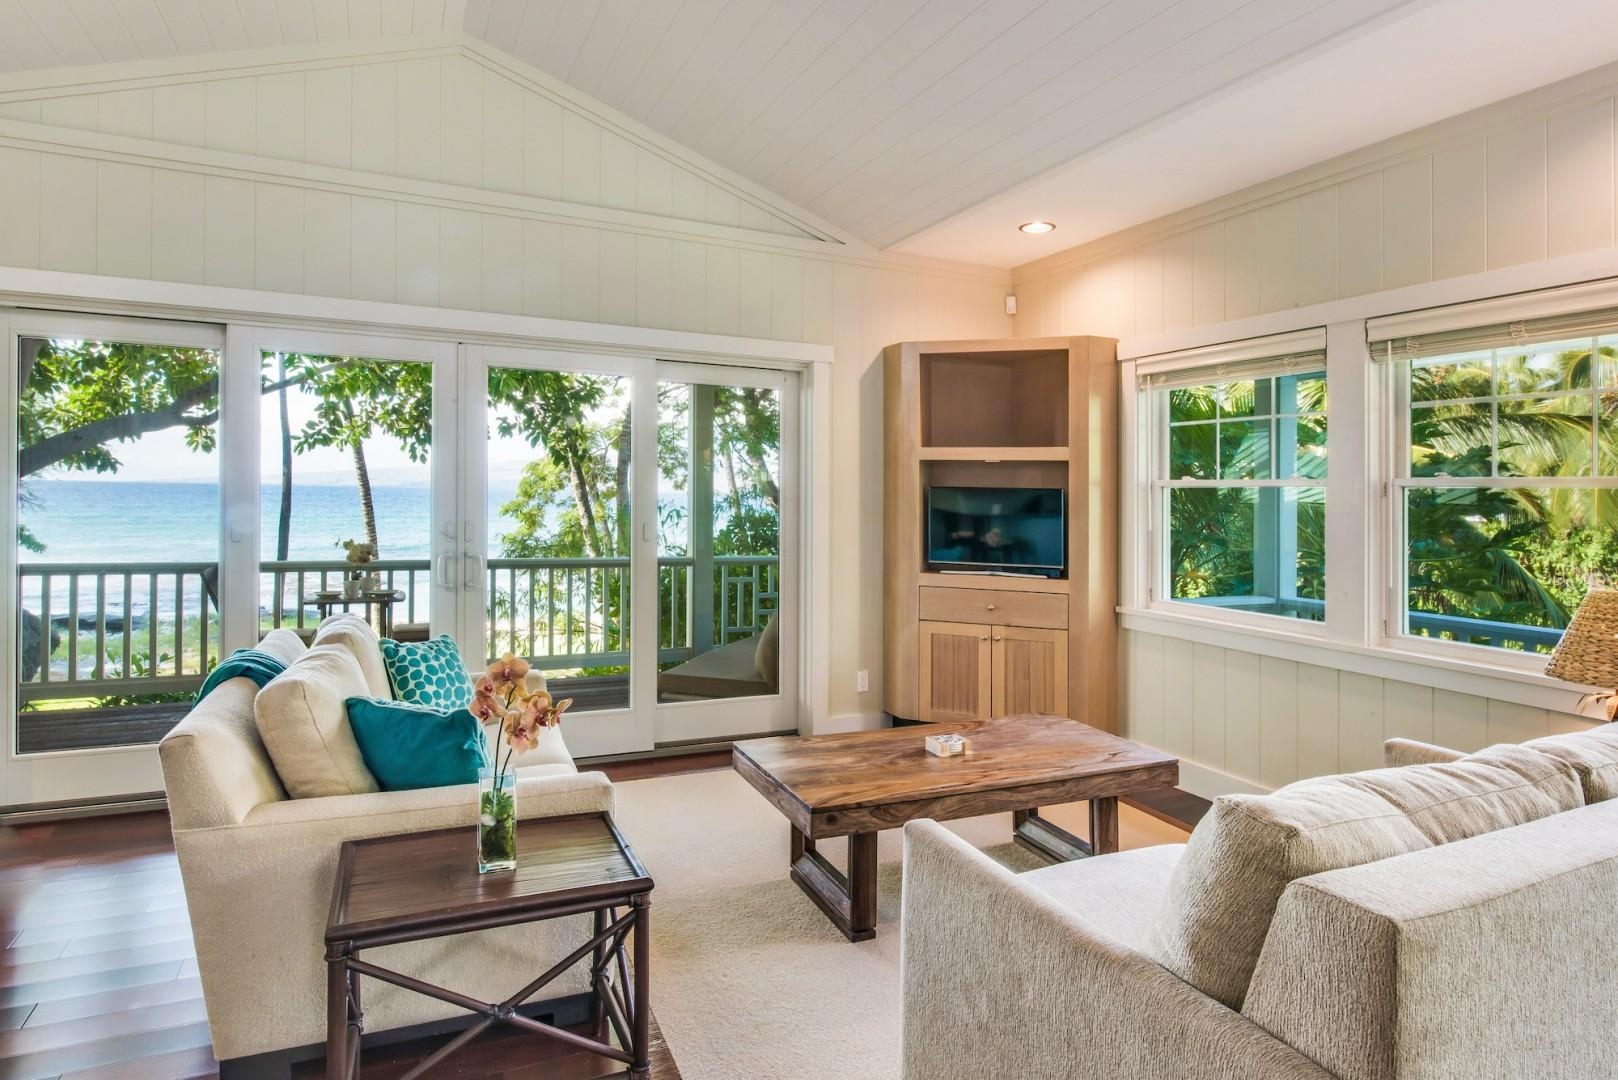 Ohana Guest Cottage Living Room w/ Split Air-Conditioning, Flat Guest Ohana Guest Cottage Living Room Furnished w/ Comfy Sofas and Queen Sleeper Sofa, Flat Screen Smart TV, Sliding Glass Doors to Private Lanai w/ Stunning Ocean and Garden Views